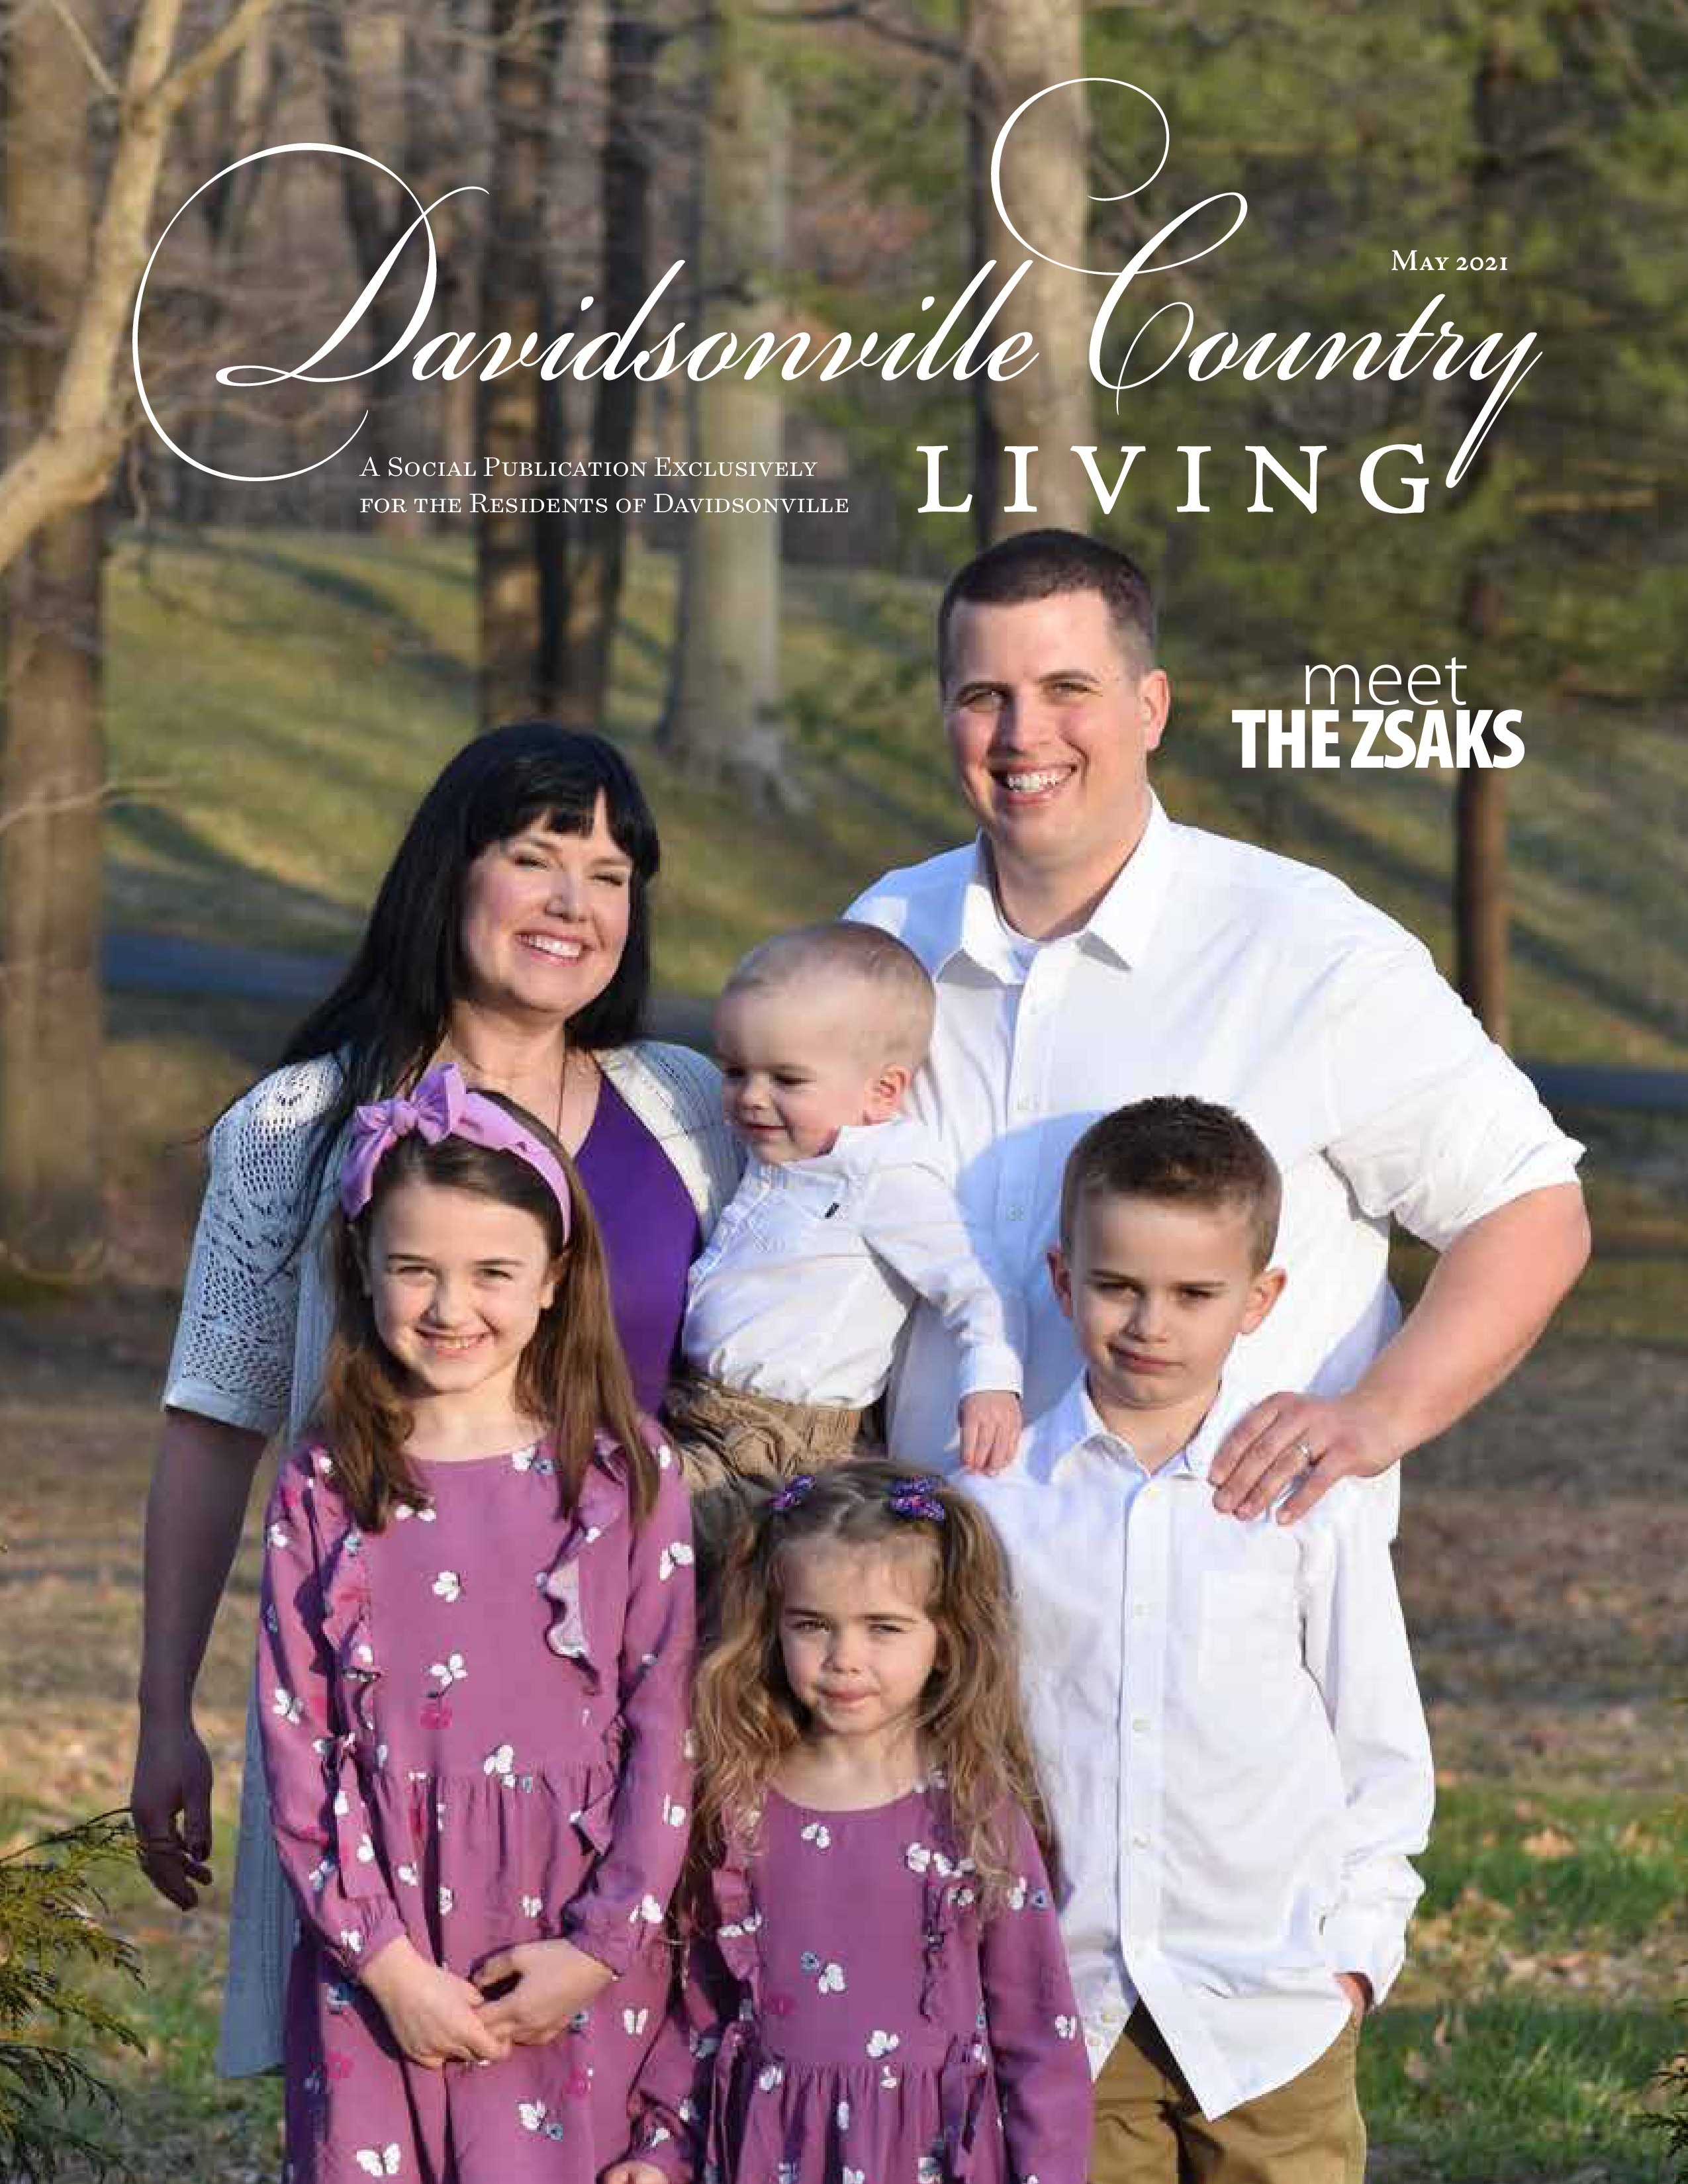 Davidsonville Country Living 2021-05-01